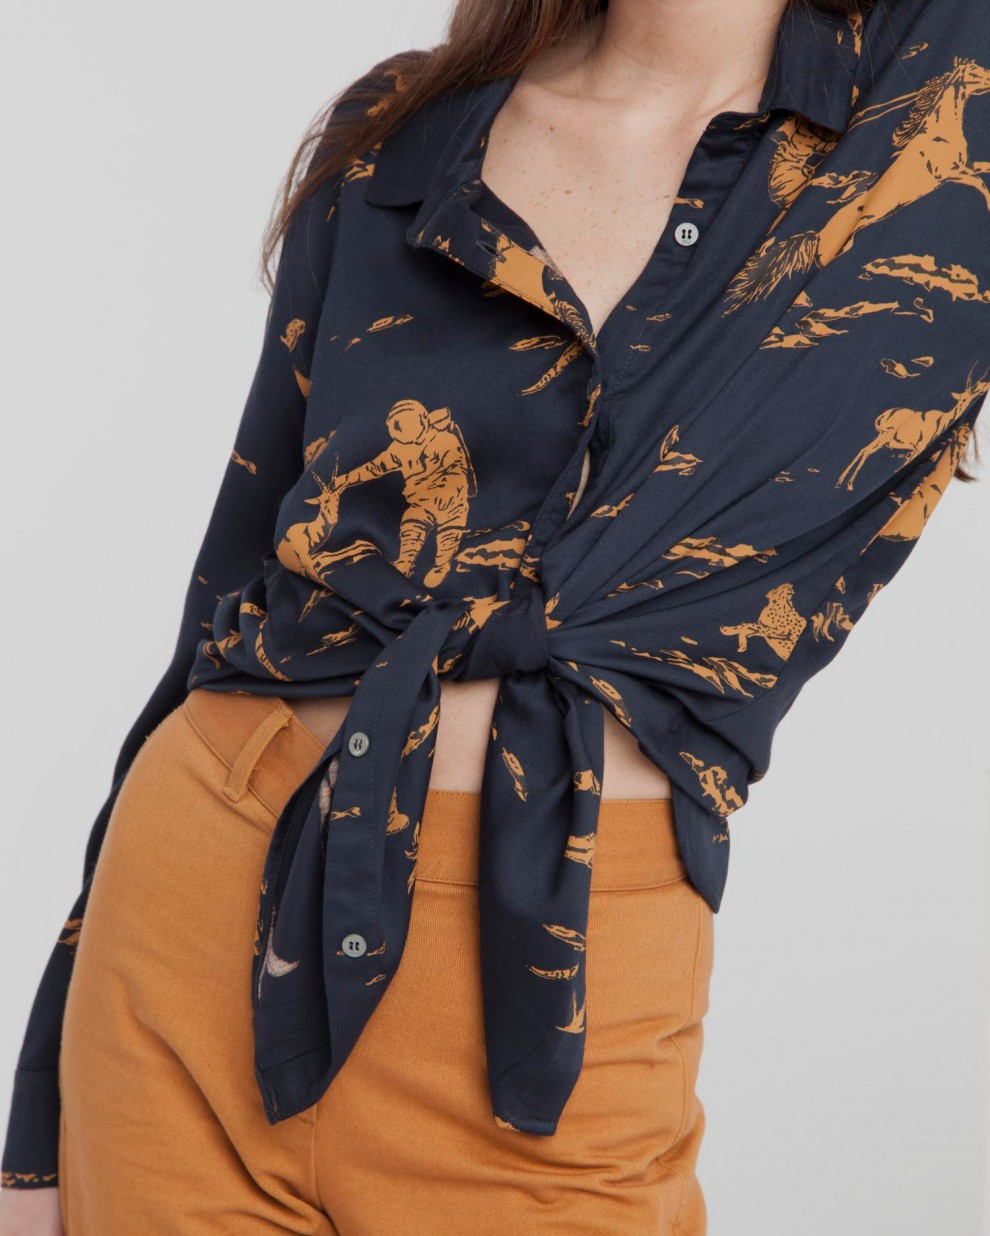 Total Eclipse Space Rider Kati Blouse